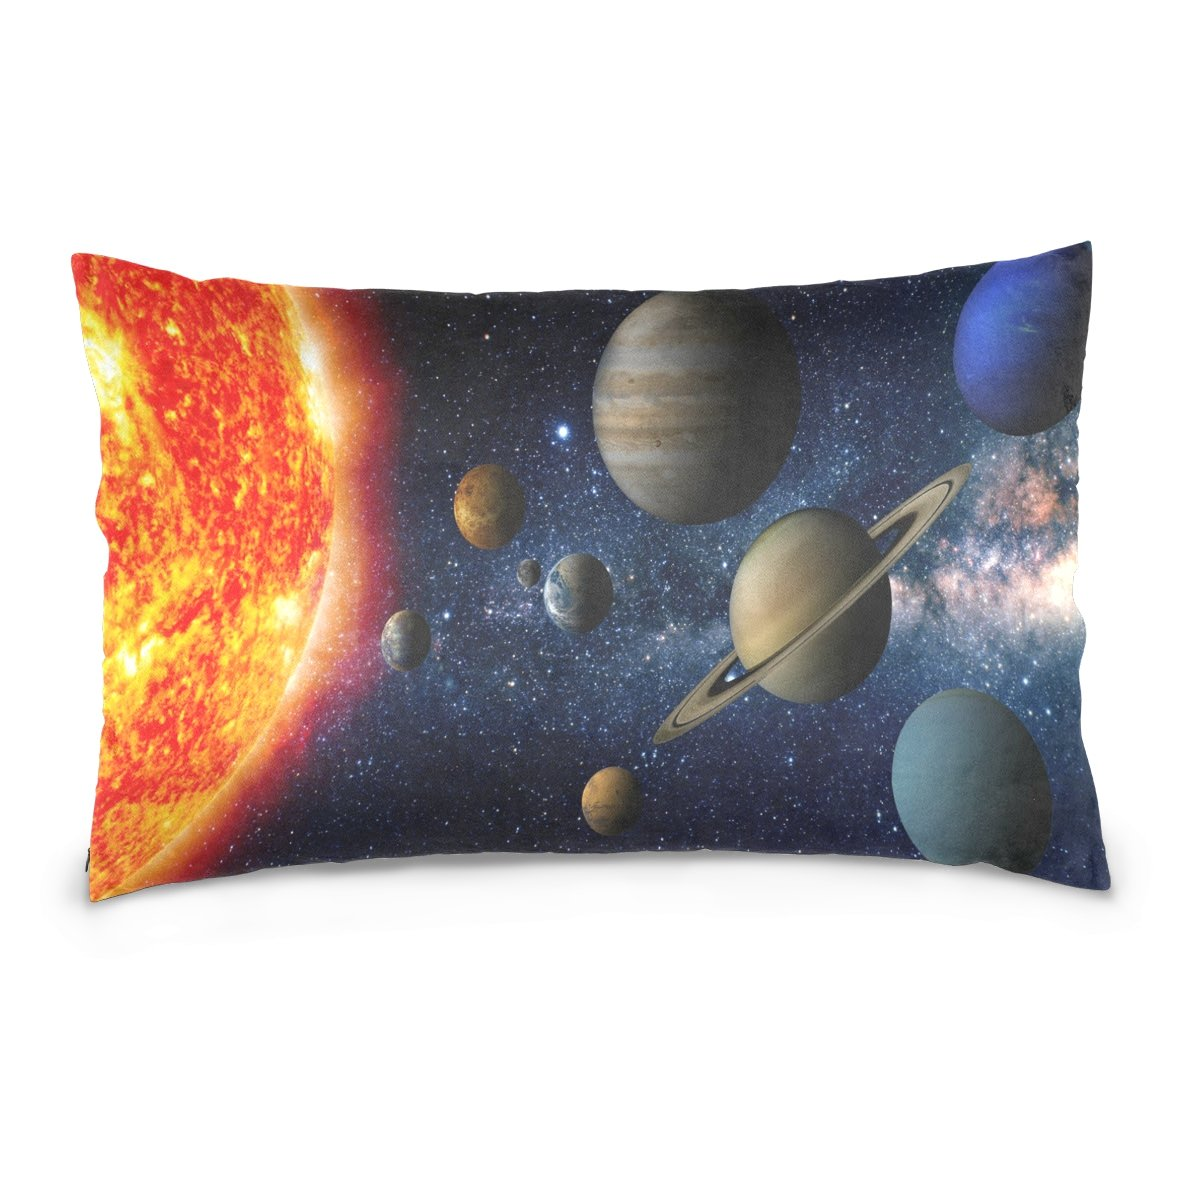 ALAZA Solar System Space Universe Cotton Lint Pillow Case,Double-sided Printing Home Decor Pillowcase Size 16''x24'',for Bedroom Women Girl Boy